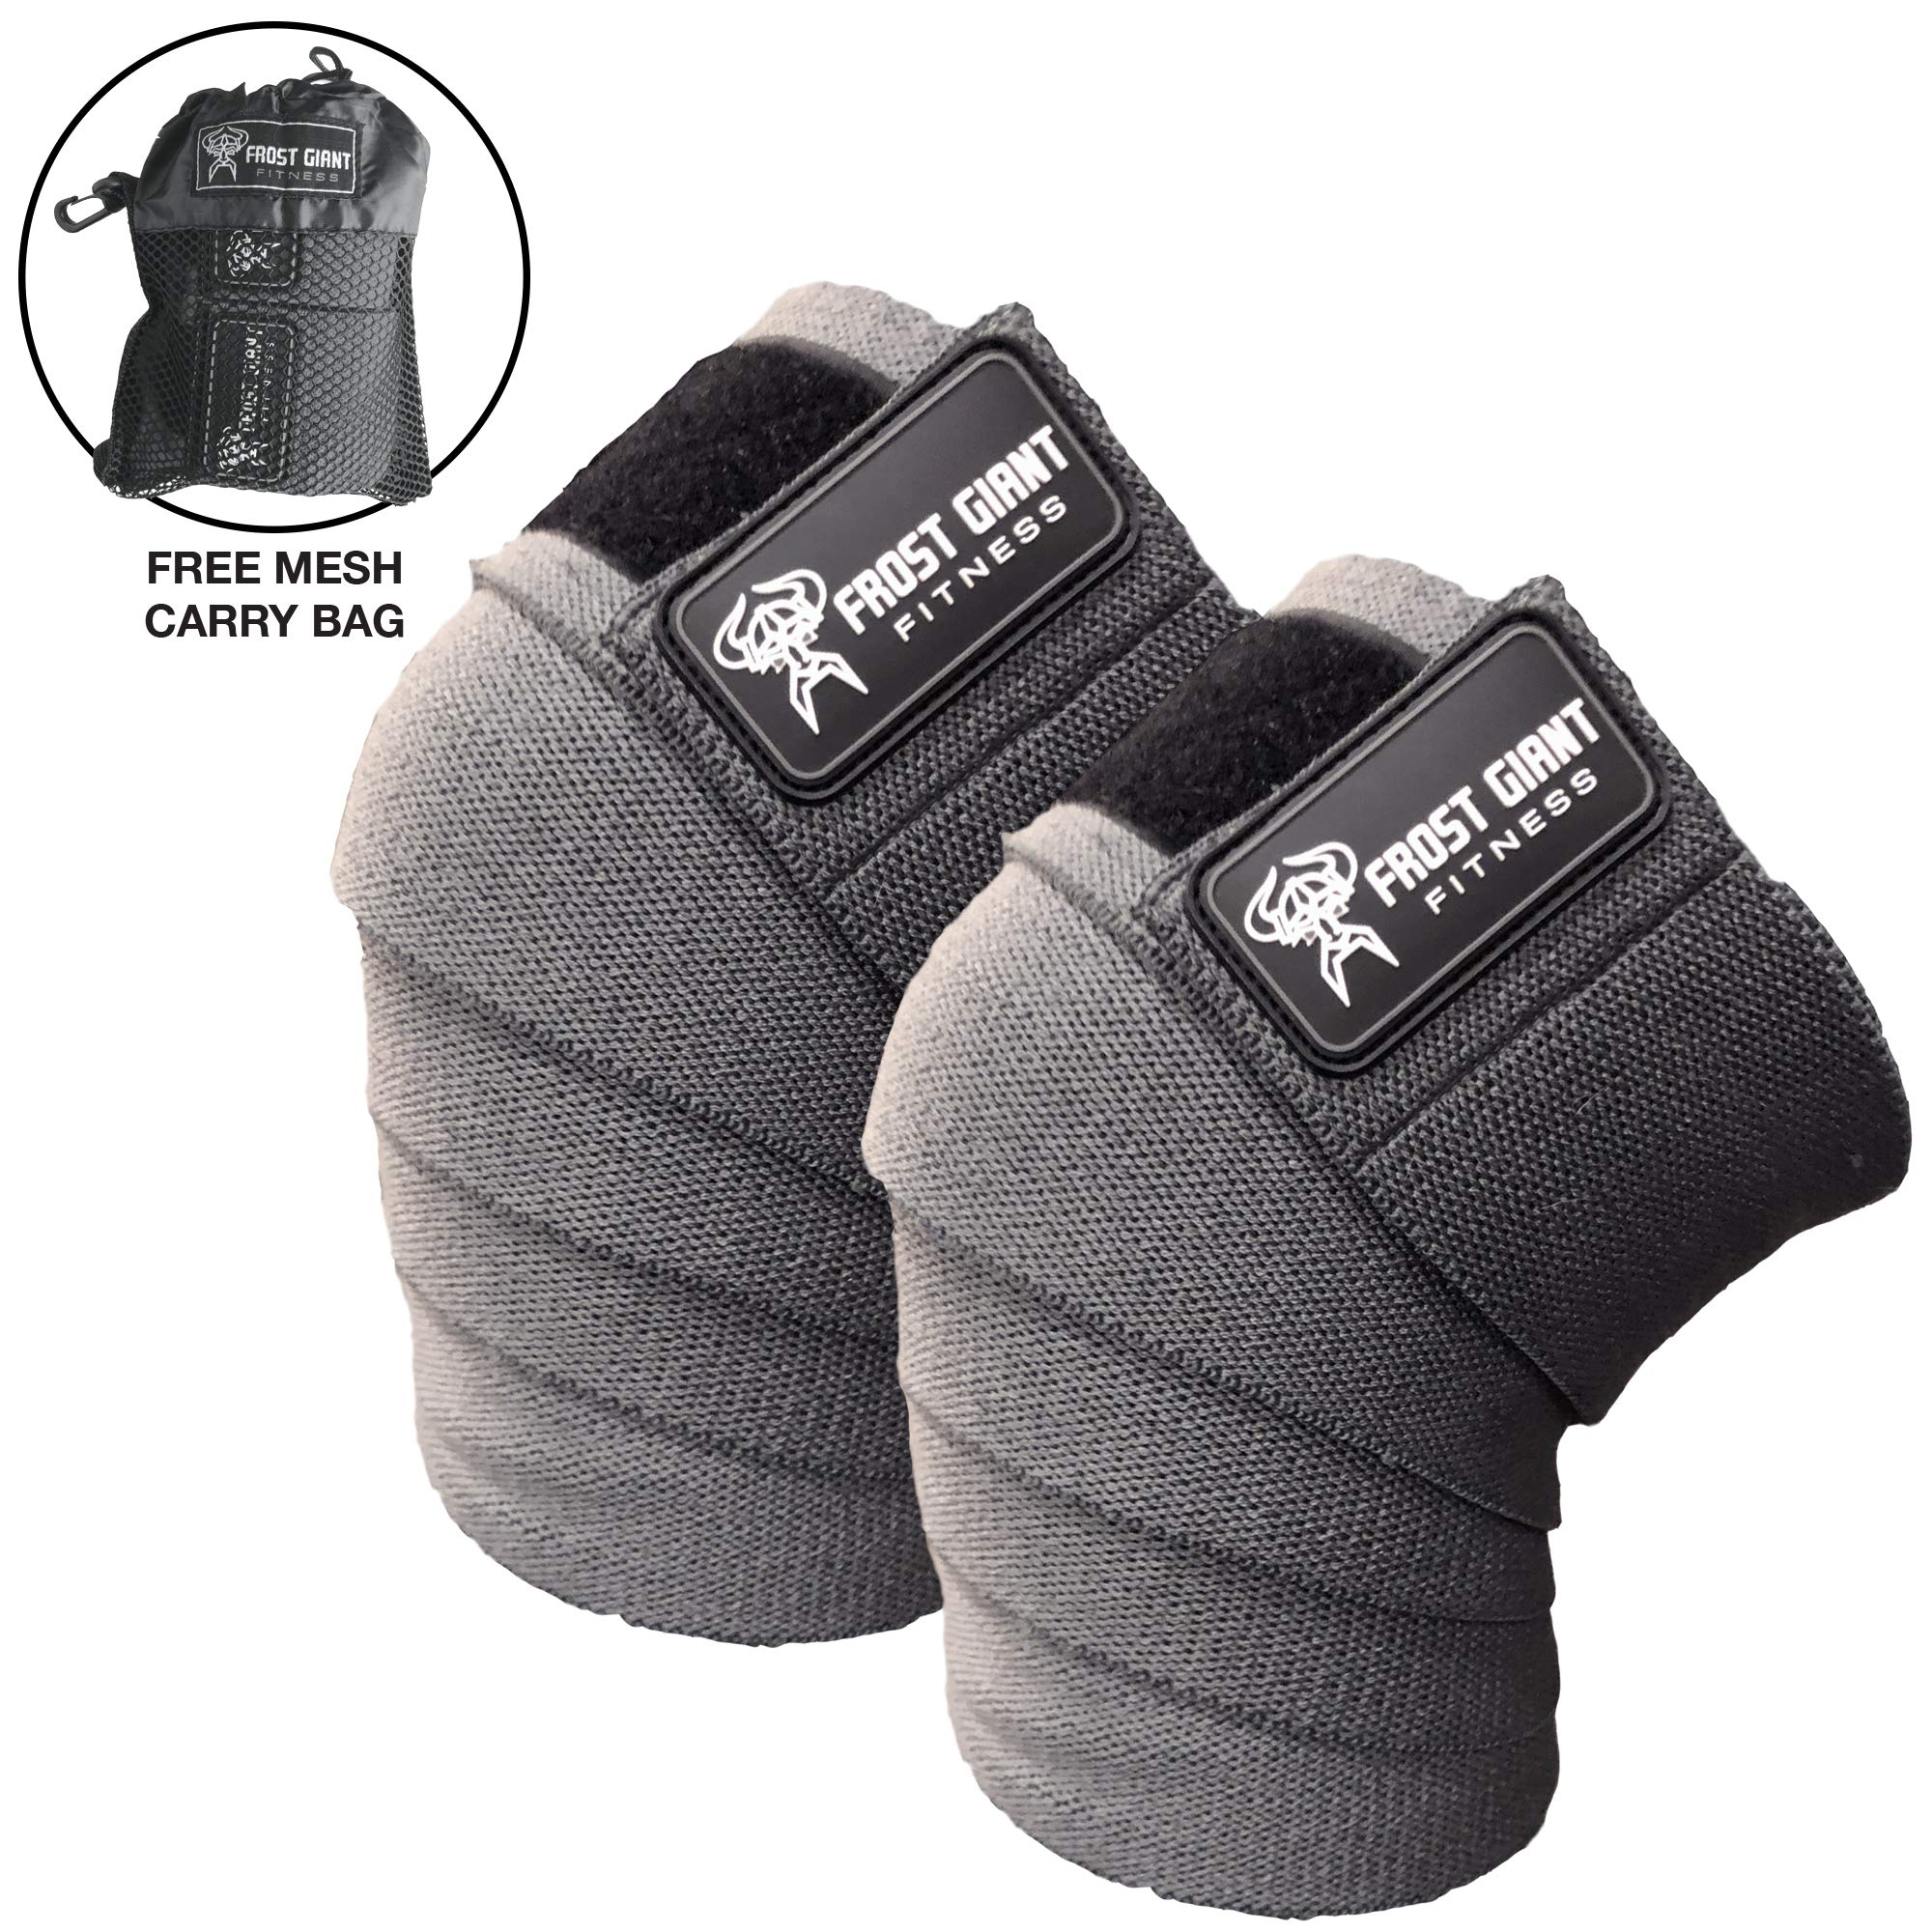 Frost Giant Fitness: 80'' Knee Wraps Set for Weightlifting, Bodybuilding, Lifting and Gym Workouts - Heavy Duty Exercising Knee Compression & Elastic Support for Men & Women. Includes Carry Bag! Grey